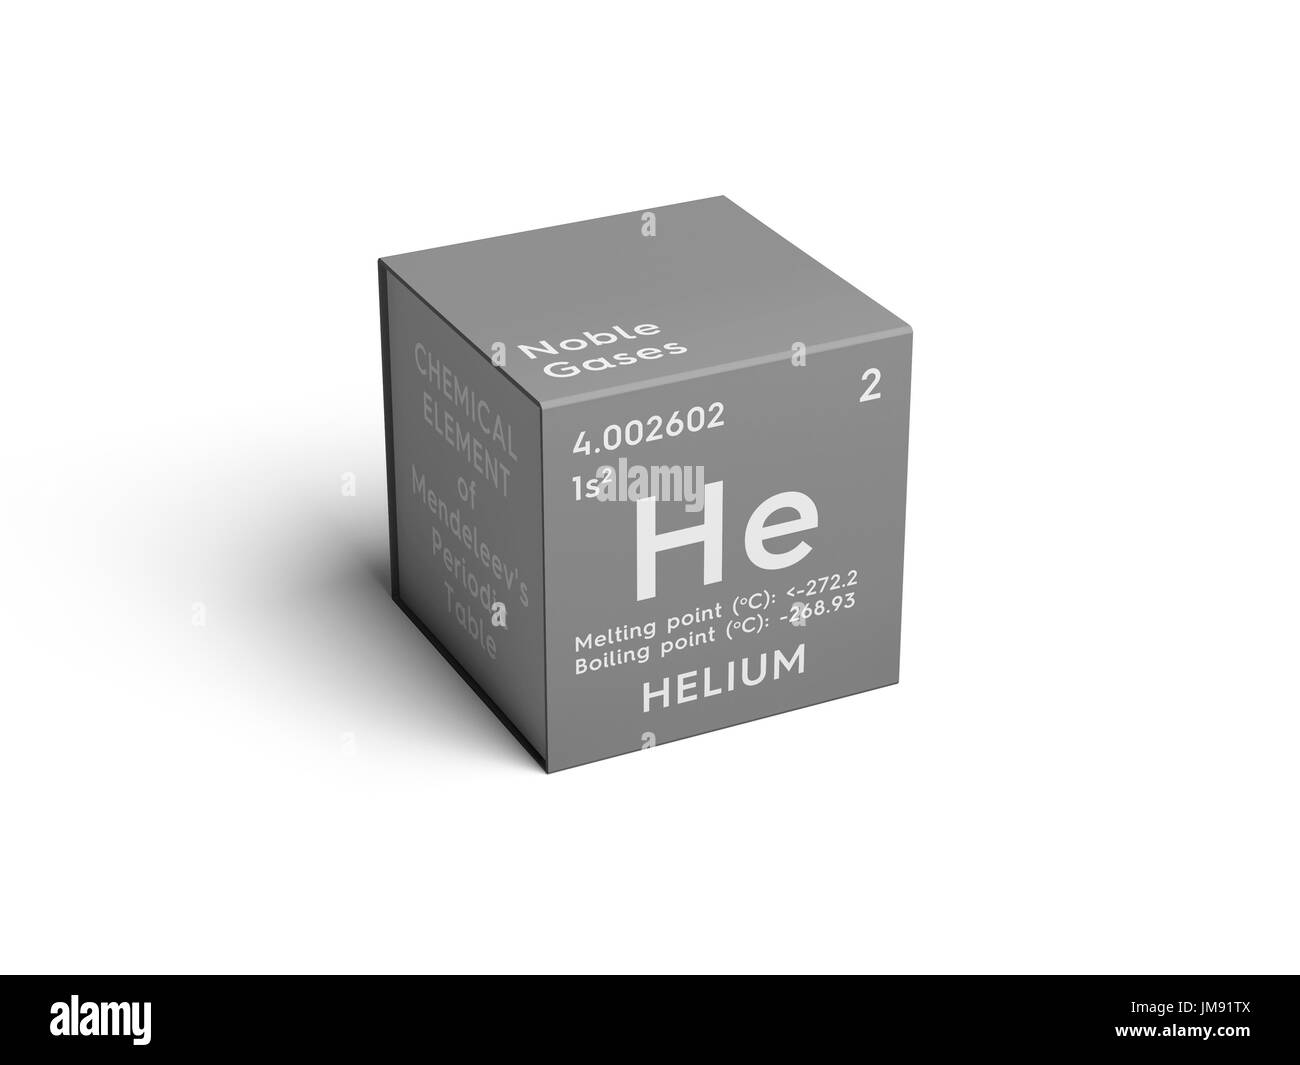 Helium noble gases chemical element of mendeleevs periodic helium noble gases chemical element of mendeleevs periodic table helium in square cube creative concept urtaz Choice Image